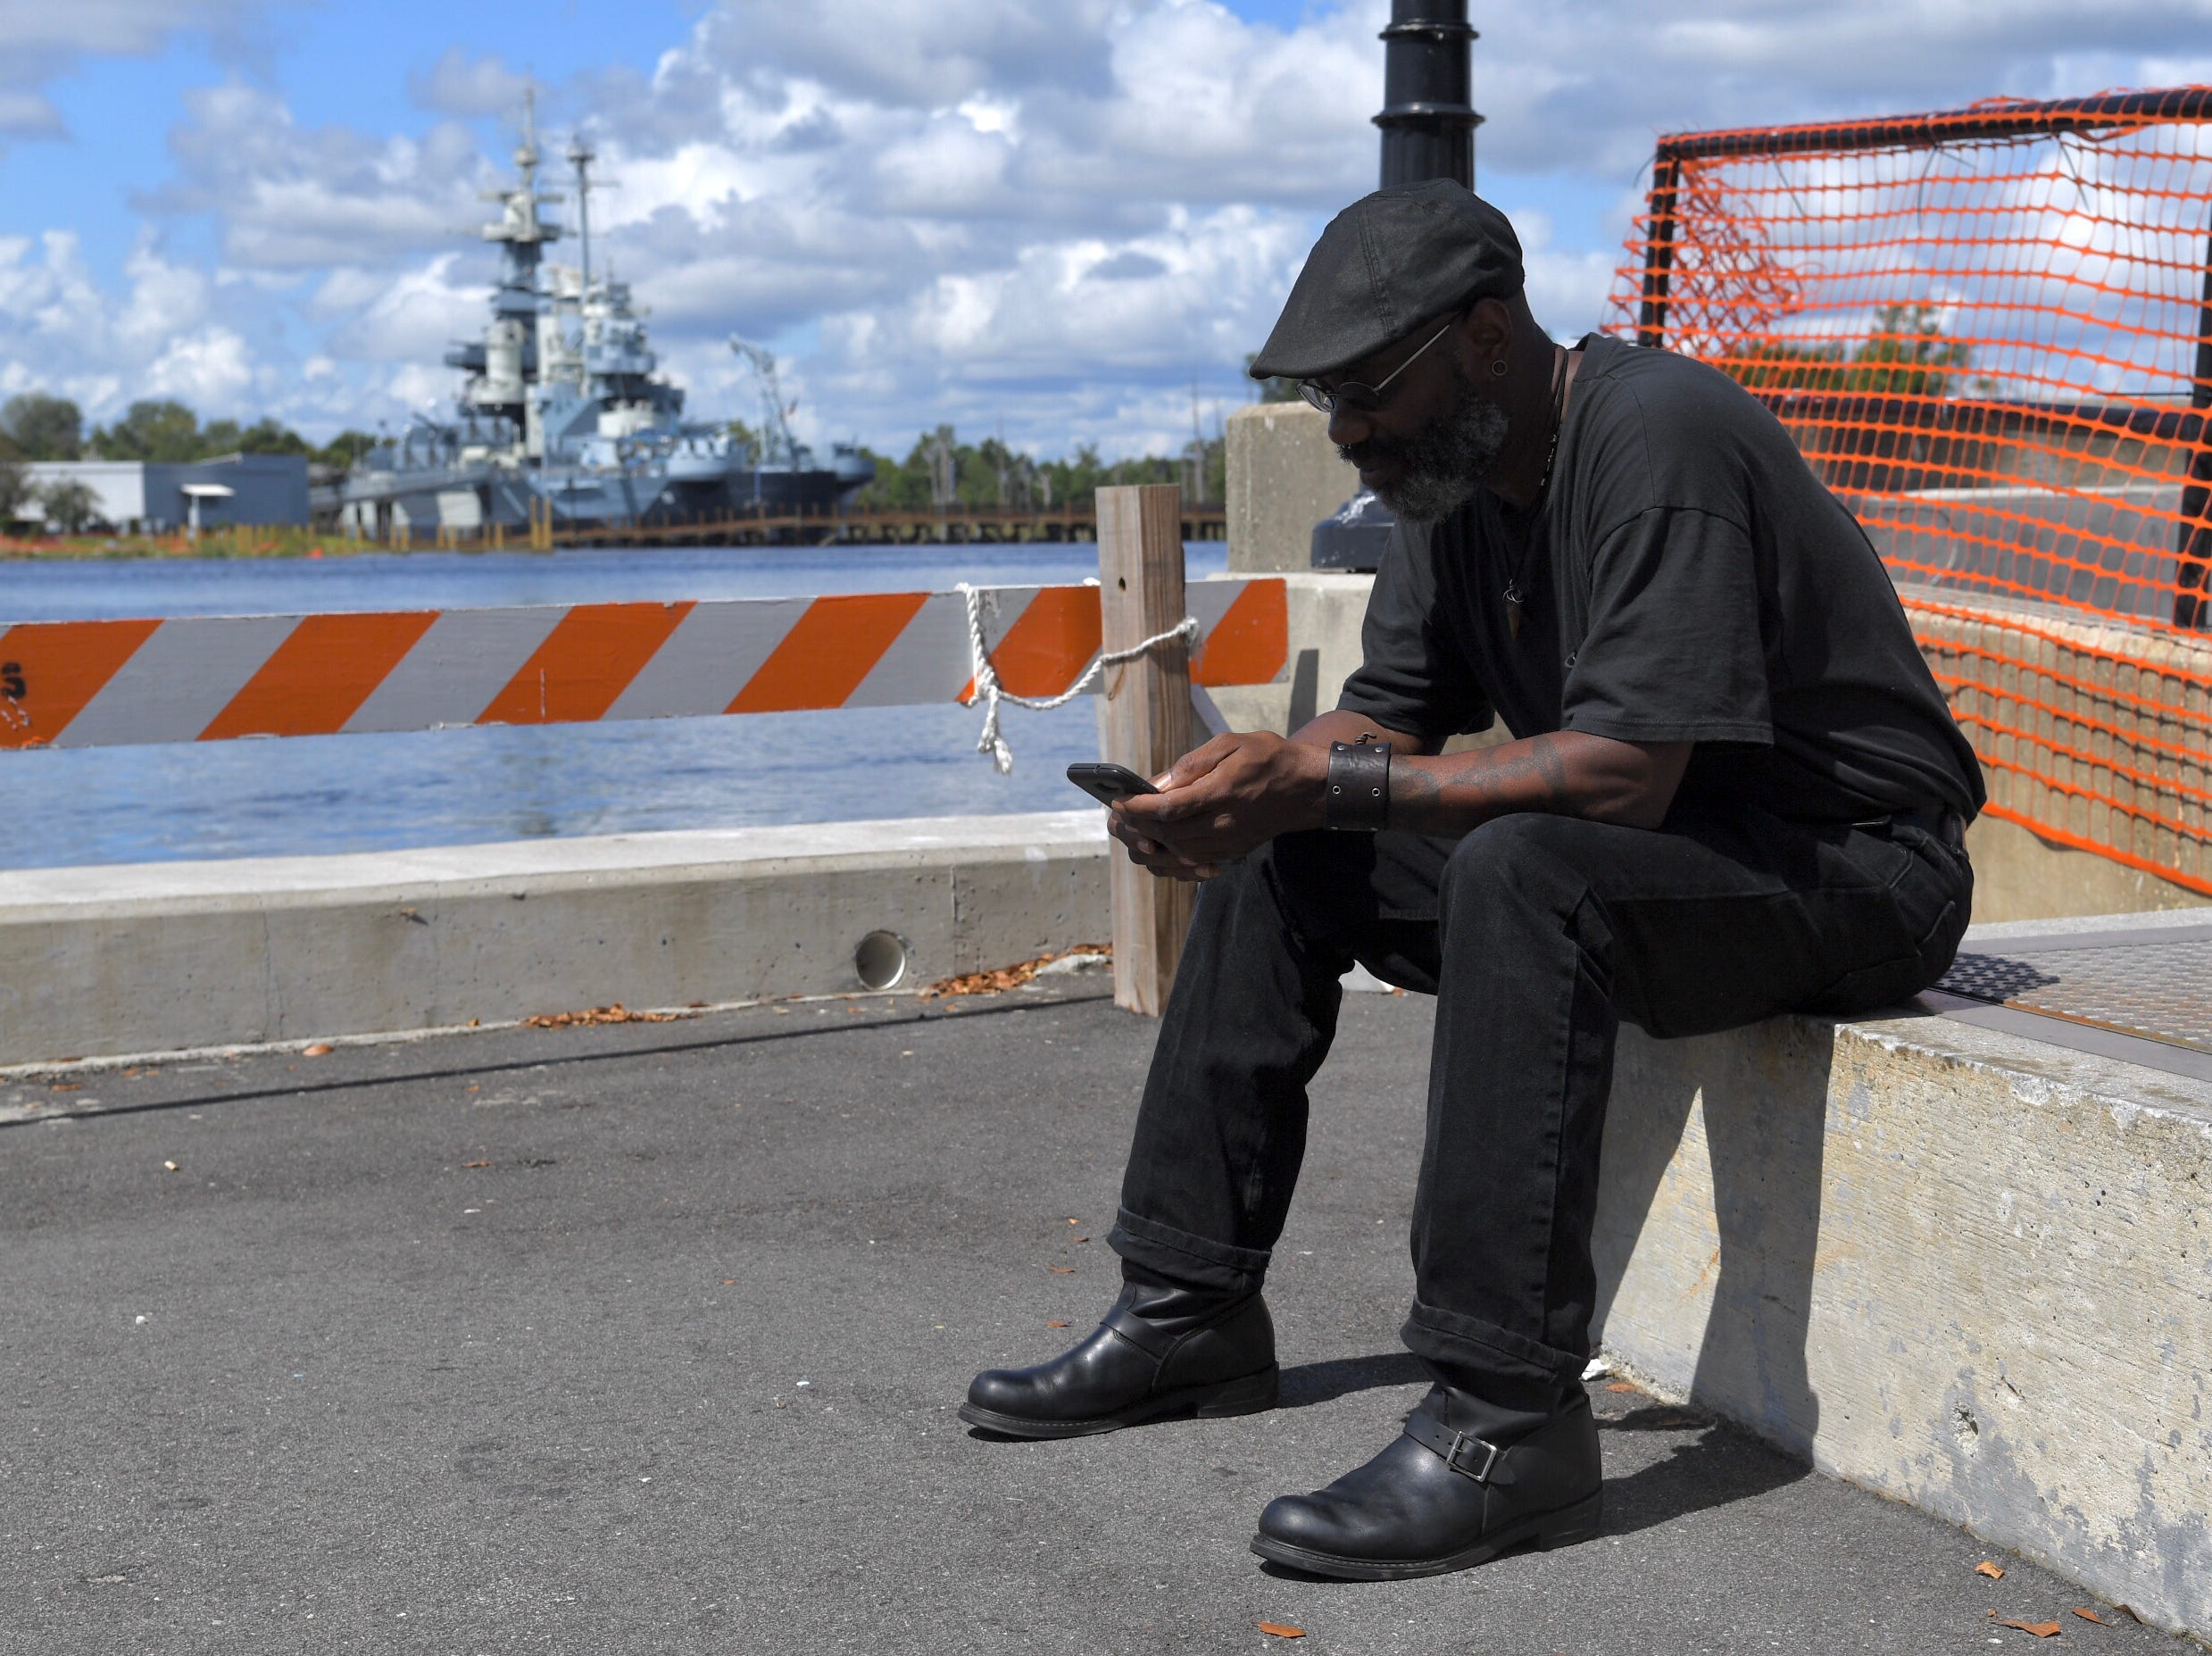 James Walker of Wilmington,N.C., is staying home with Hurricane Florence on the way. Walker said he took time off working at the shipyard on Wednesday, Sept. 12, 2018, since there is nothing to unload the day before the hurricane lands, with an expected 11-13 foot storm surge.